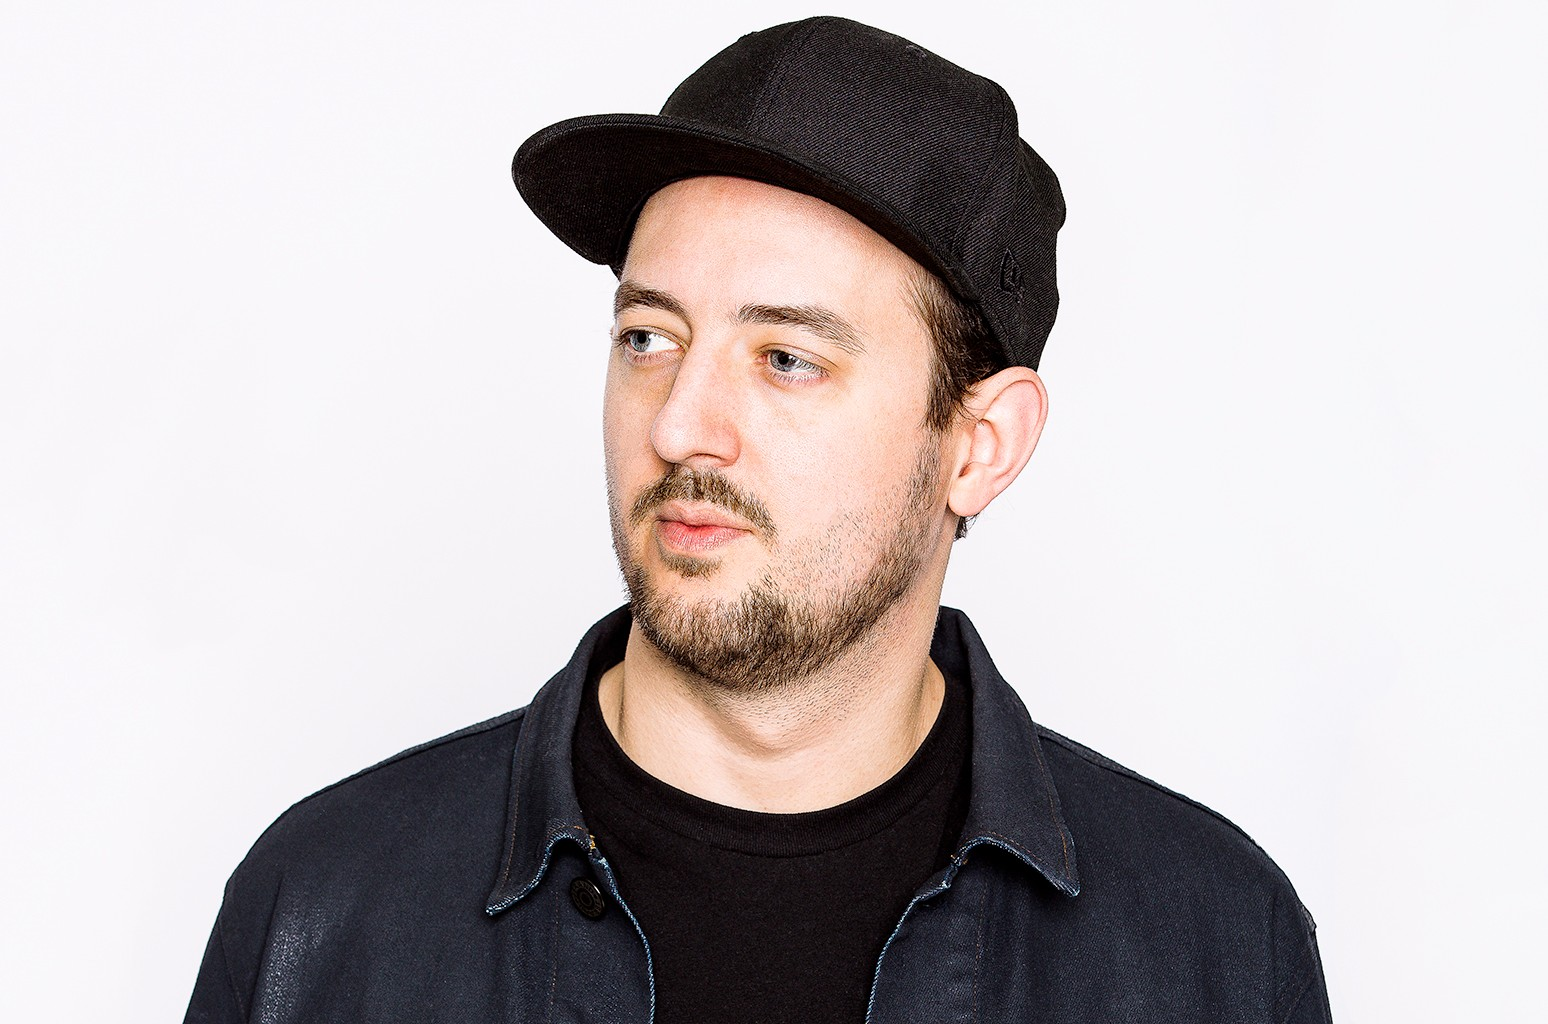 'The Drug Became the Only Thing I Thought About': Wolfgang Gartner on Anxiety, Rehab & This 'Incredibly Optimistic' Career Moment